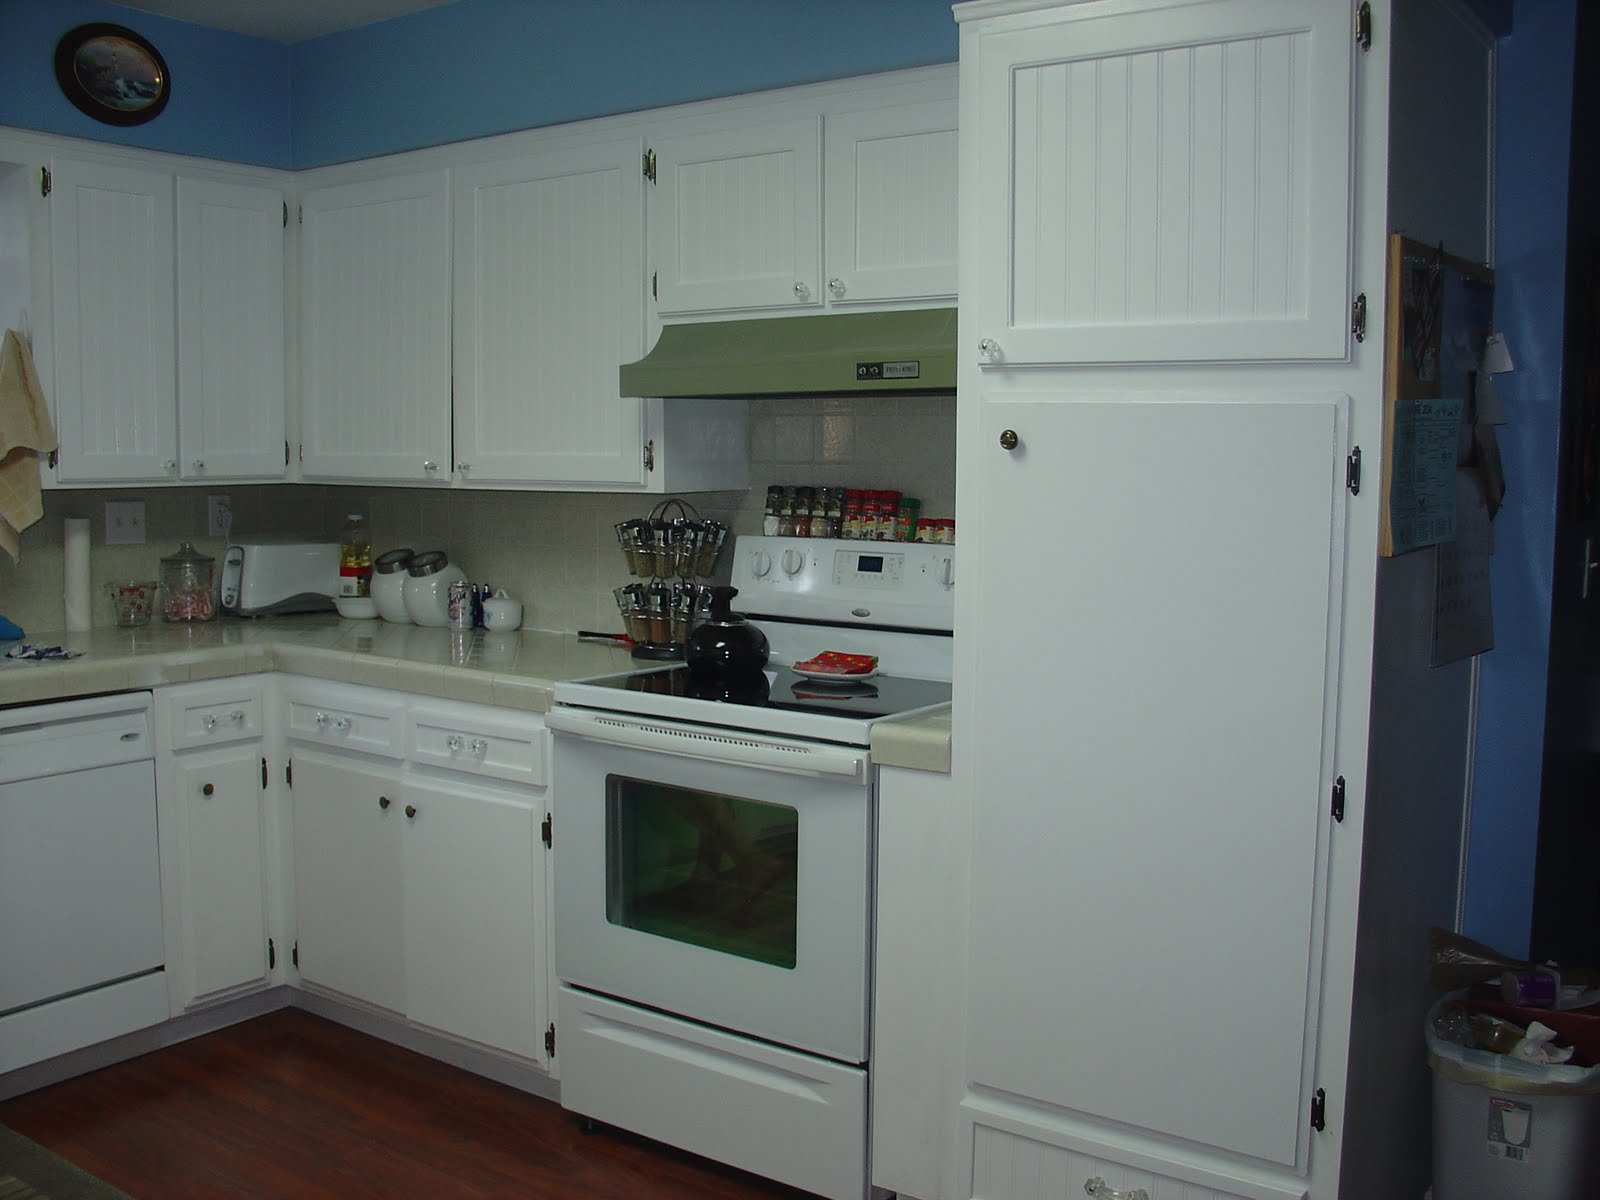 The Isaac Family: My New Kitchen Cabinet Doors